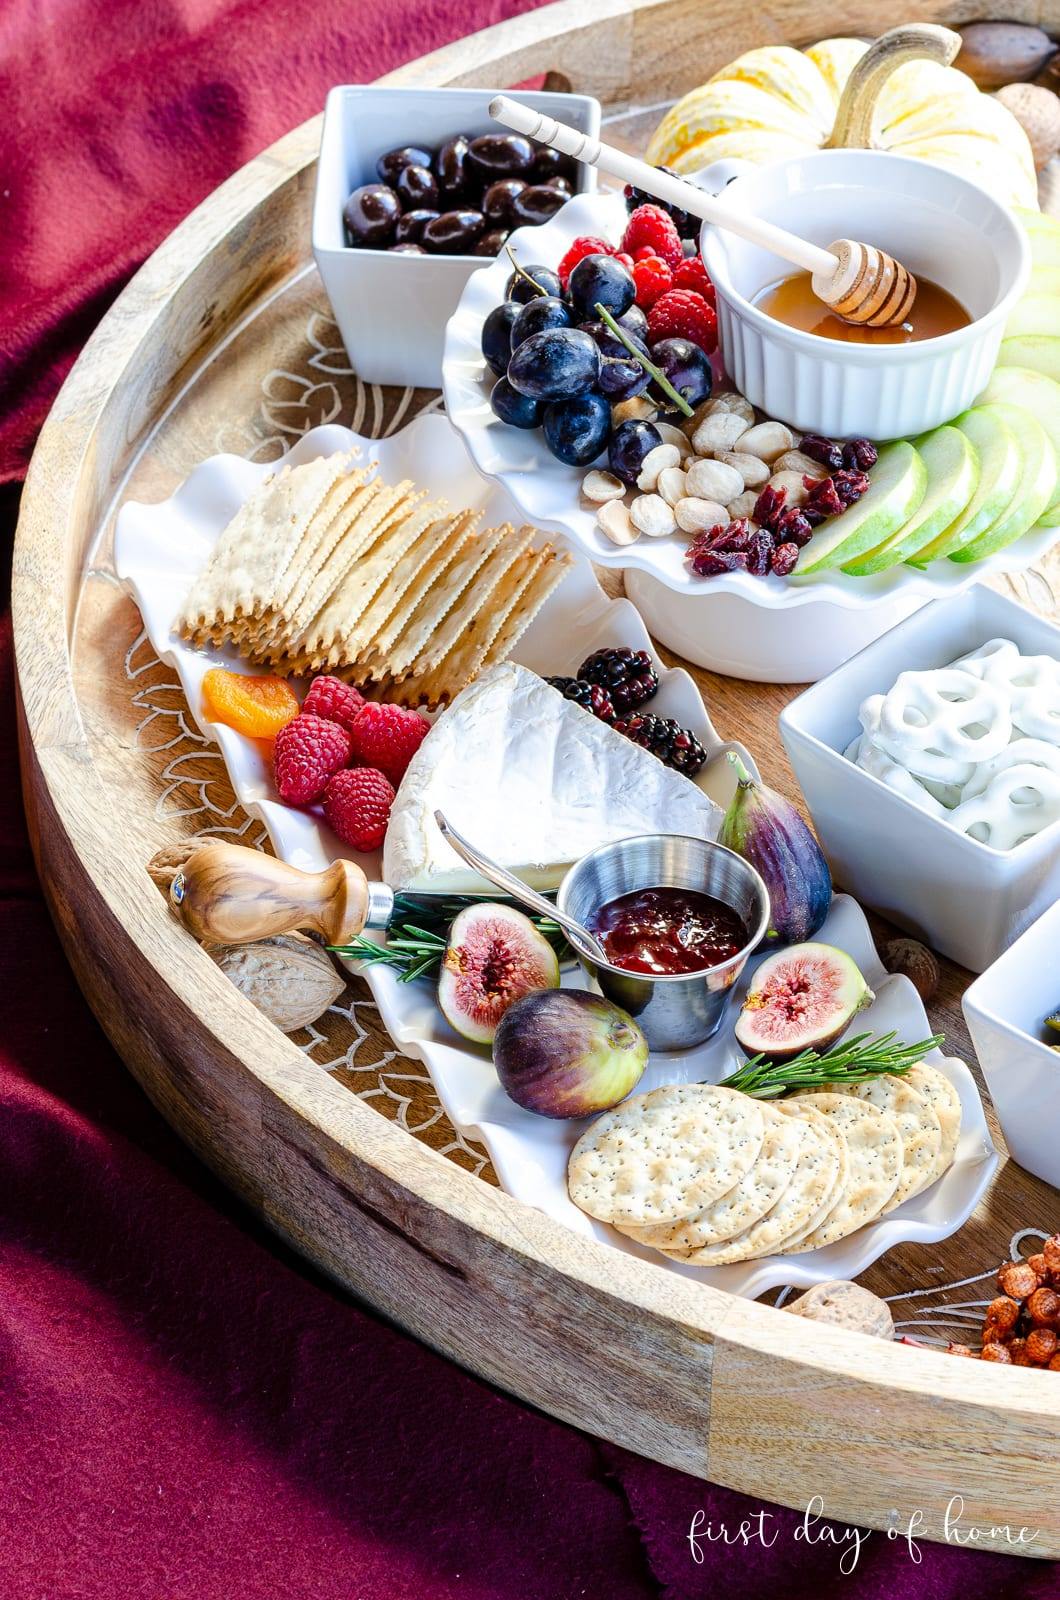 Brie cheese, chocolate covered nuts, yogurt covered pretzels, crackers, figs and fig preserves on charcuterie tray as appetizers. #charcuterieboard #appetizers #holidayappetizer #cheeseboard #firstdayofhome